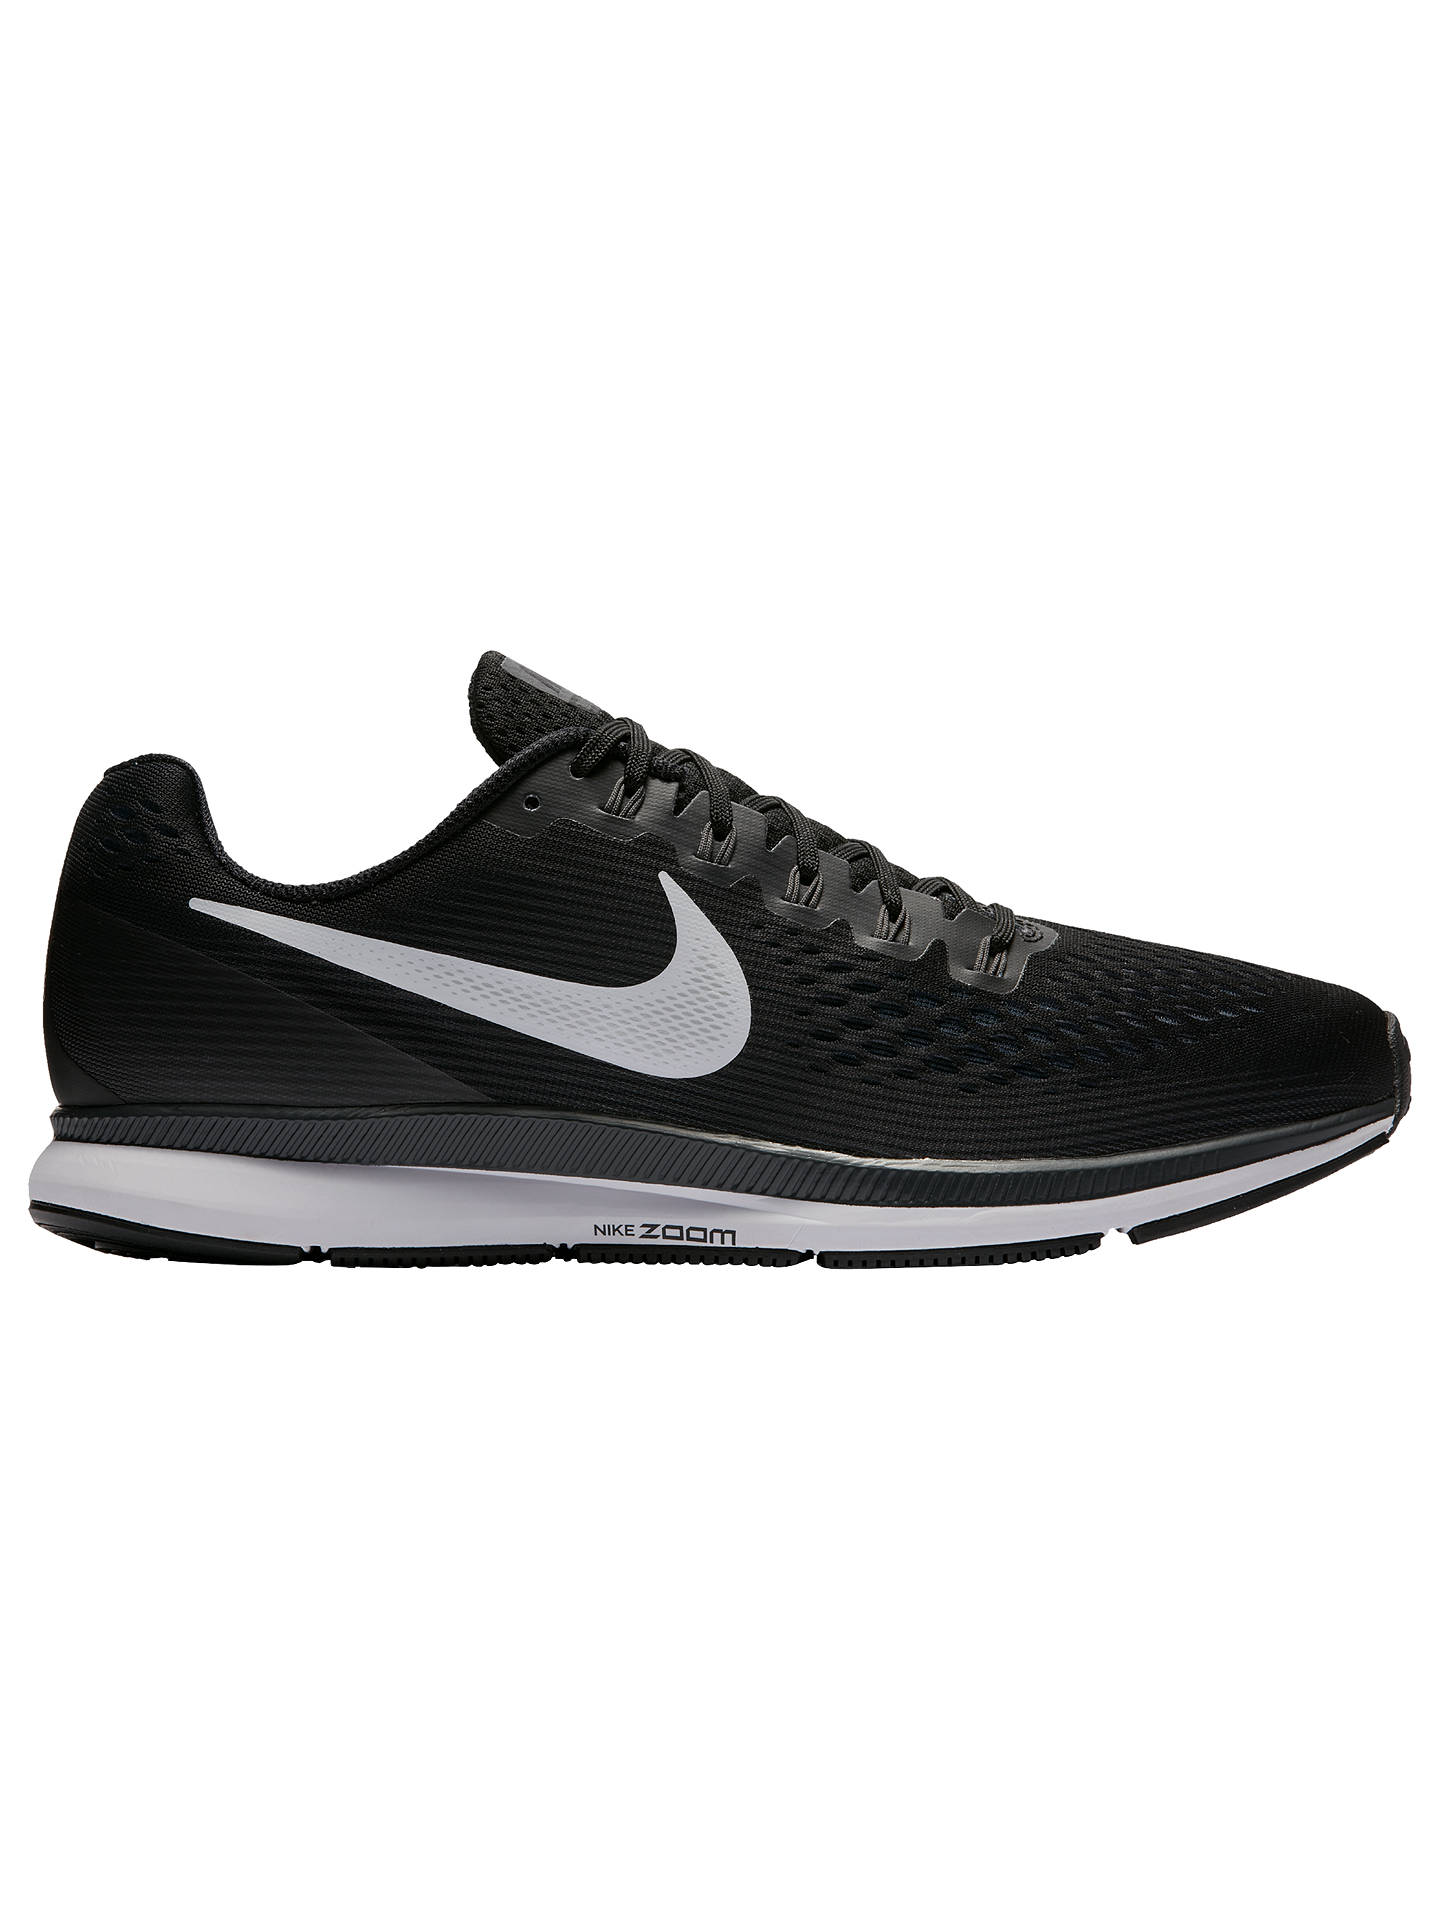 5a8468ac38da Buy Nike Air Zoom Pegasus 34 Men s Running Shoes